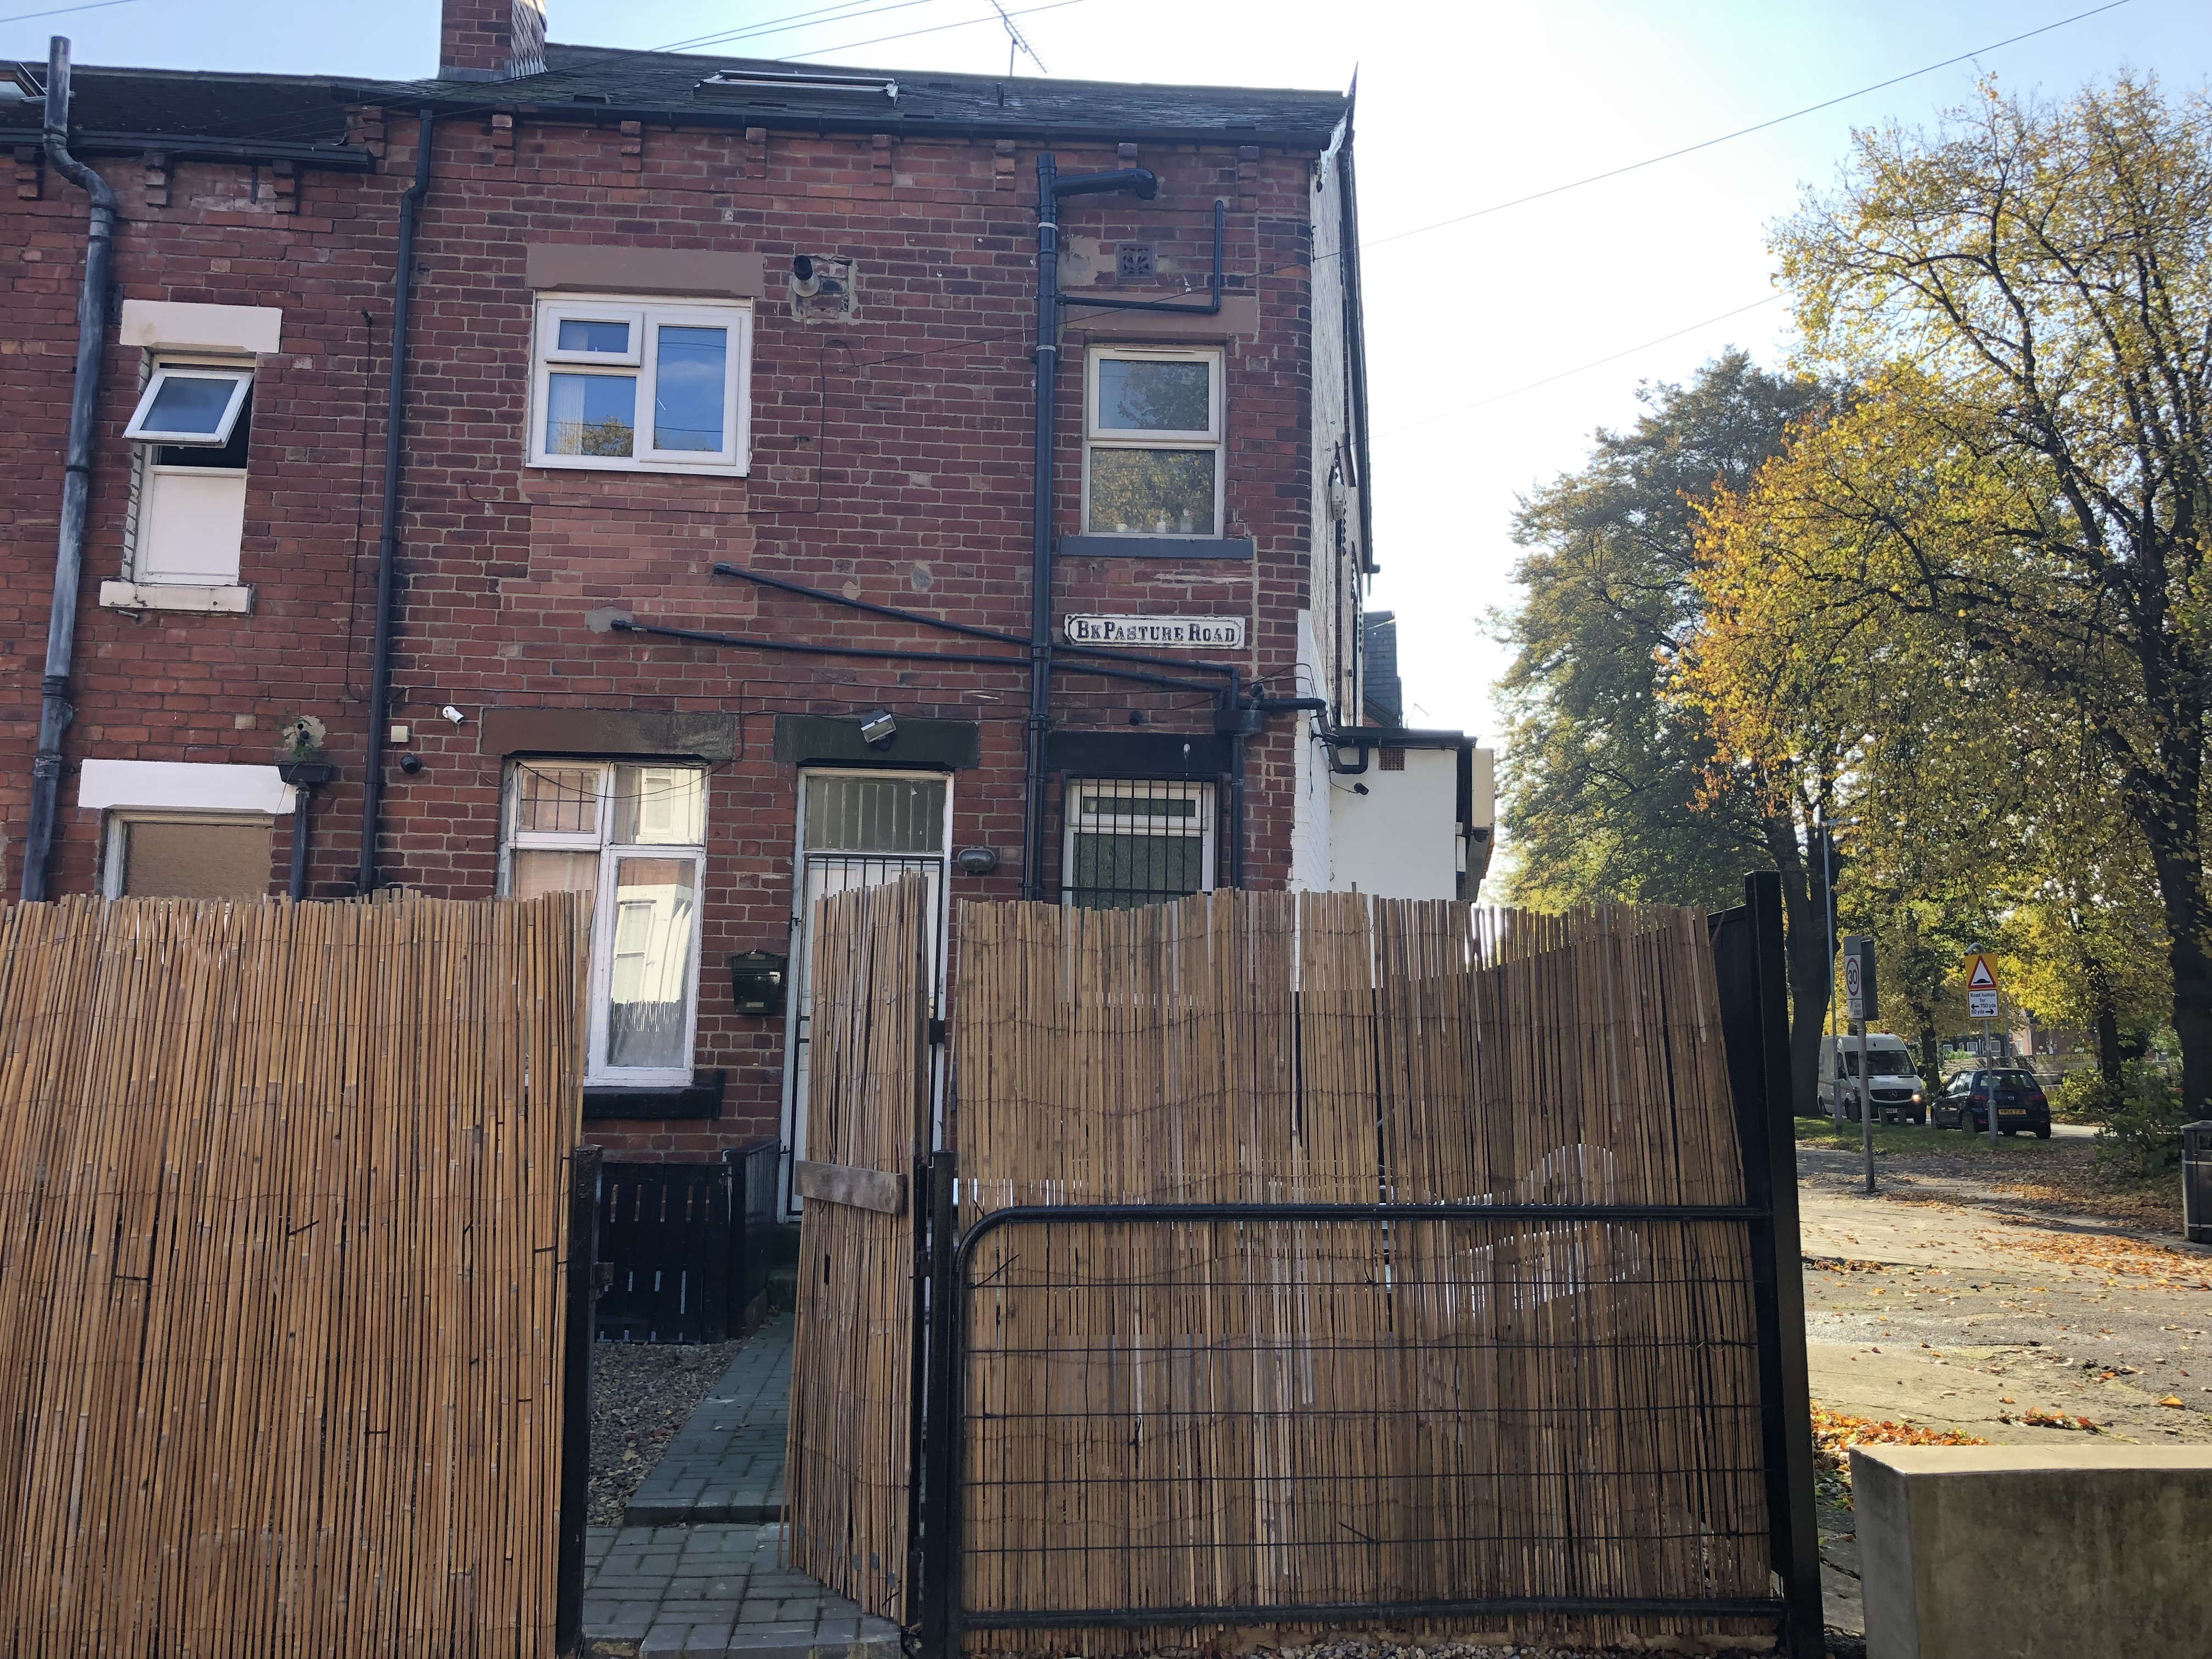 New to the lettings market we are delighted to offer this spacious -bedroom house!